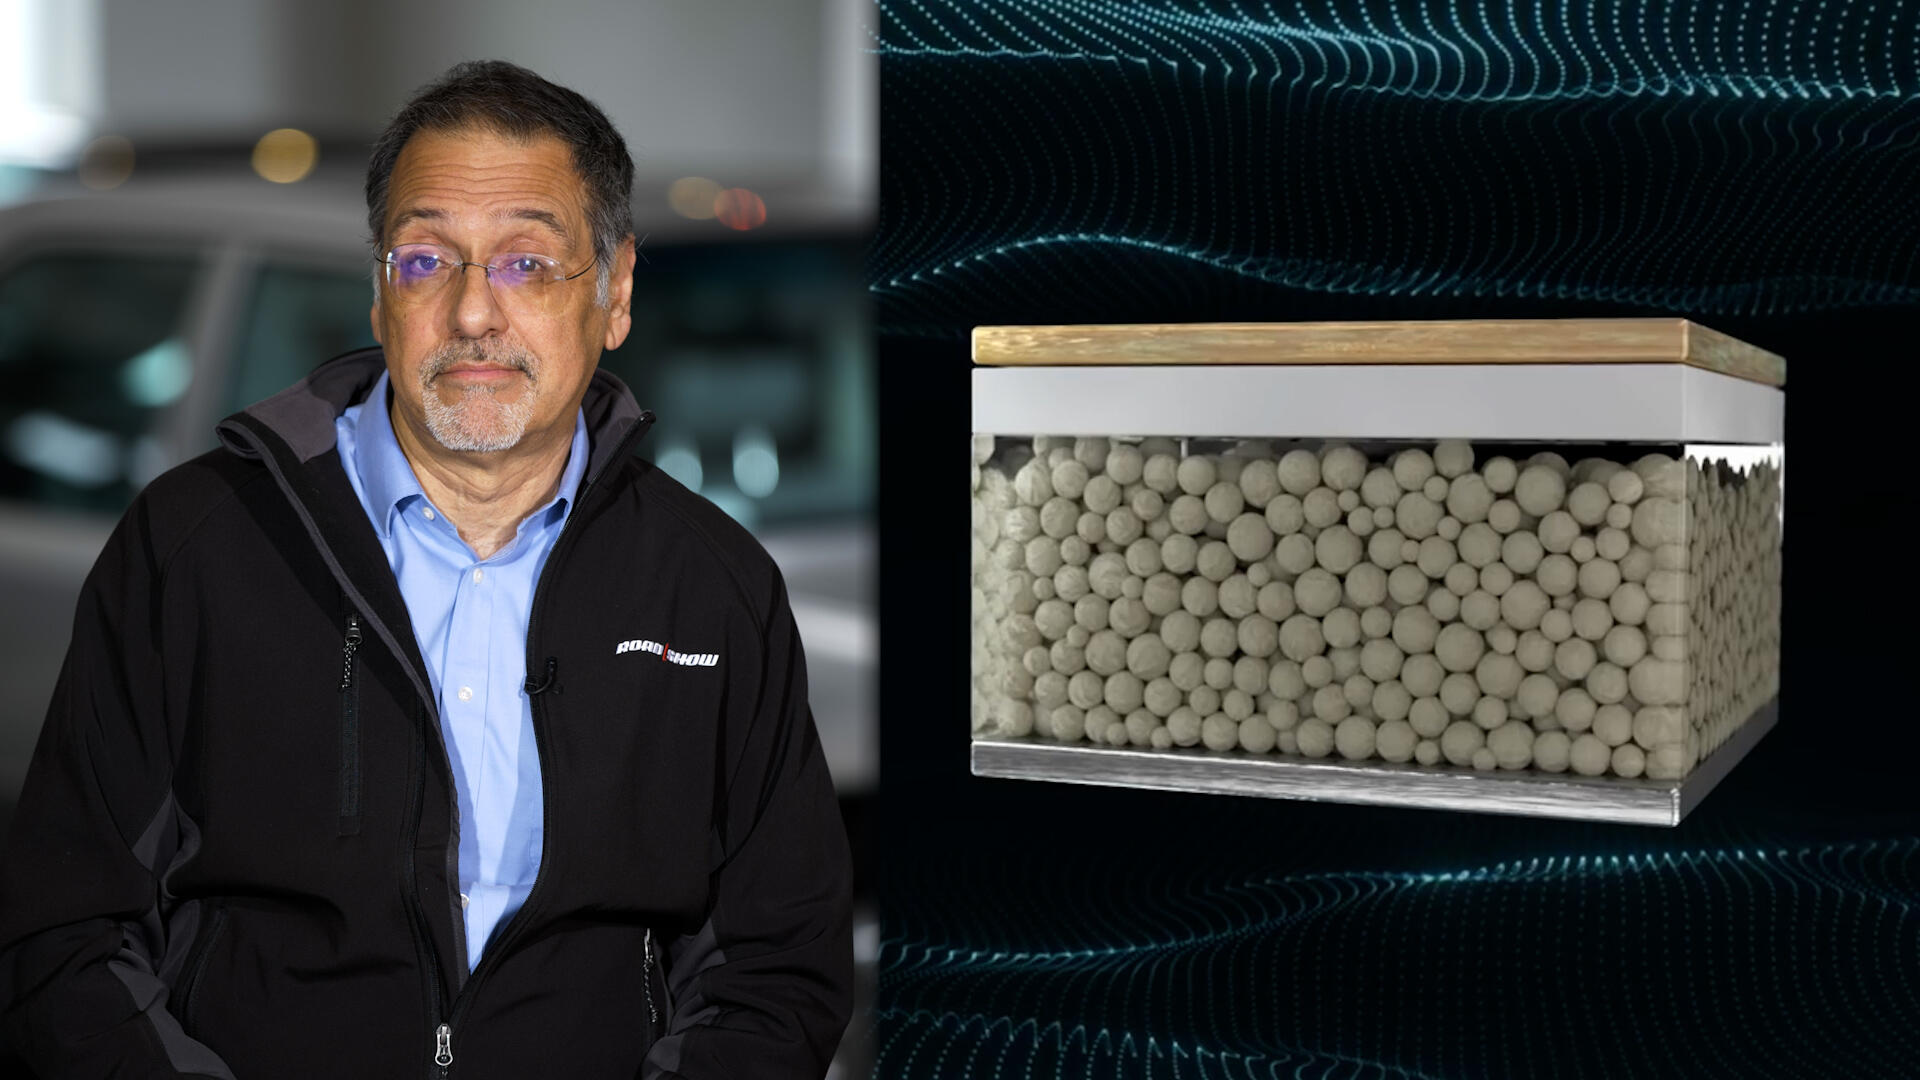 Video: Why solid-state batteries are a hot topic for electric cars